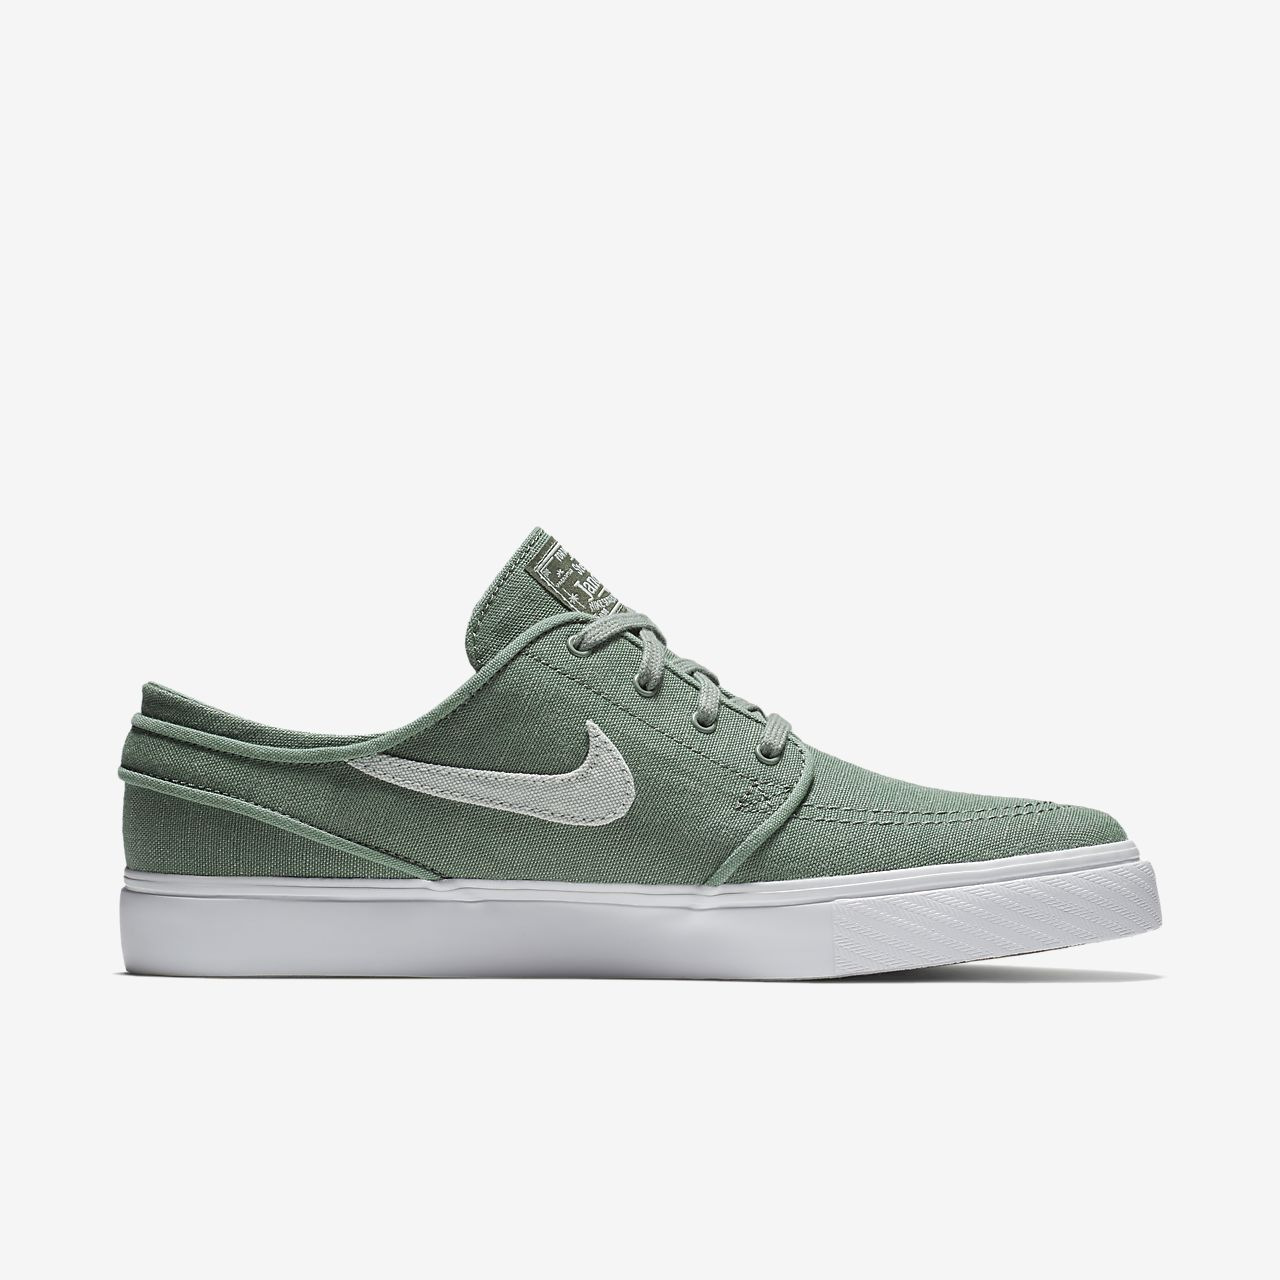 Newest Nike SB Zoom Stefan Janoski SB Skate Shoes